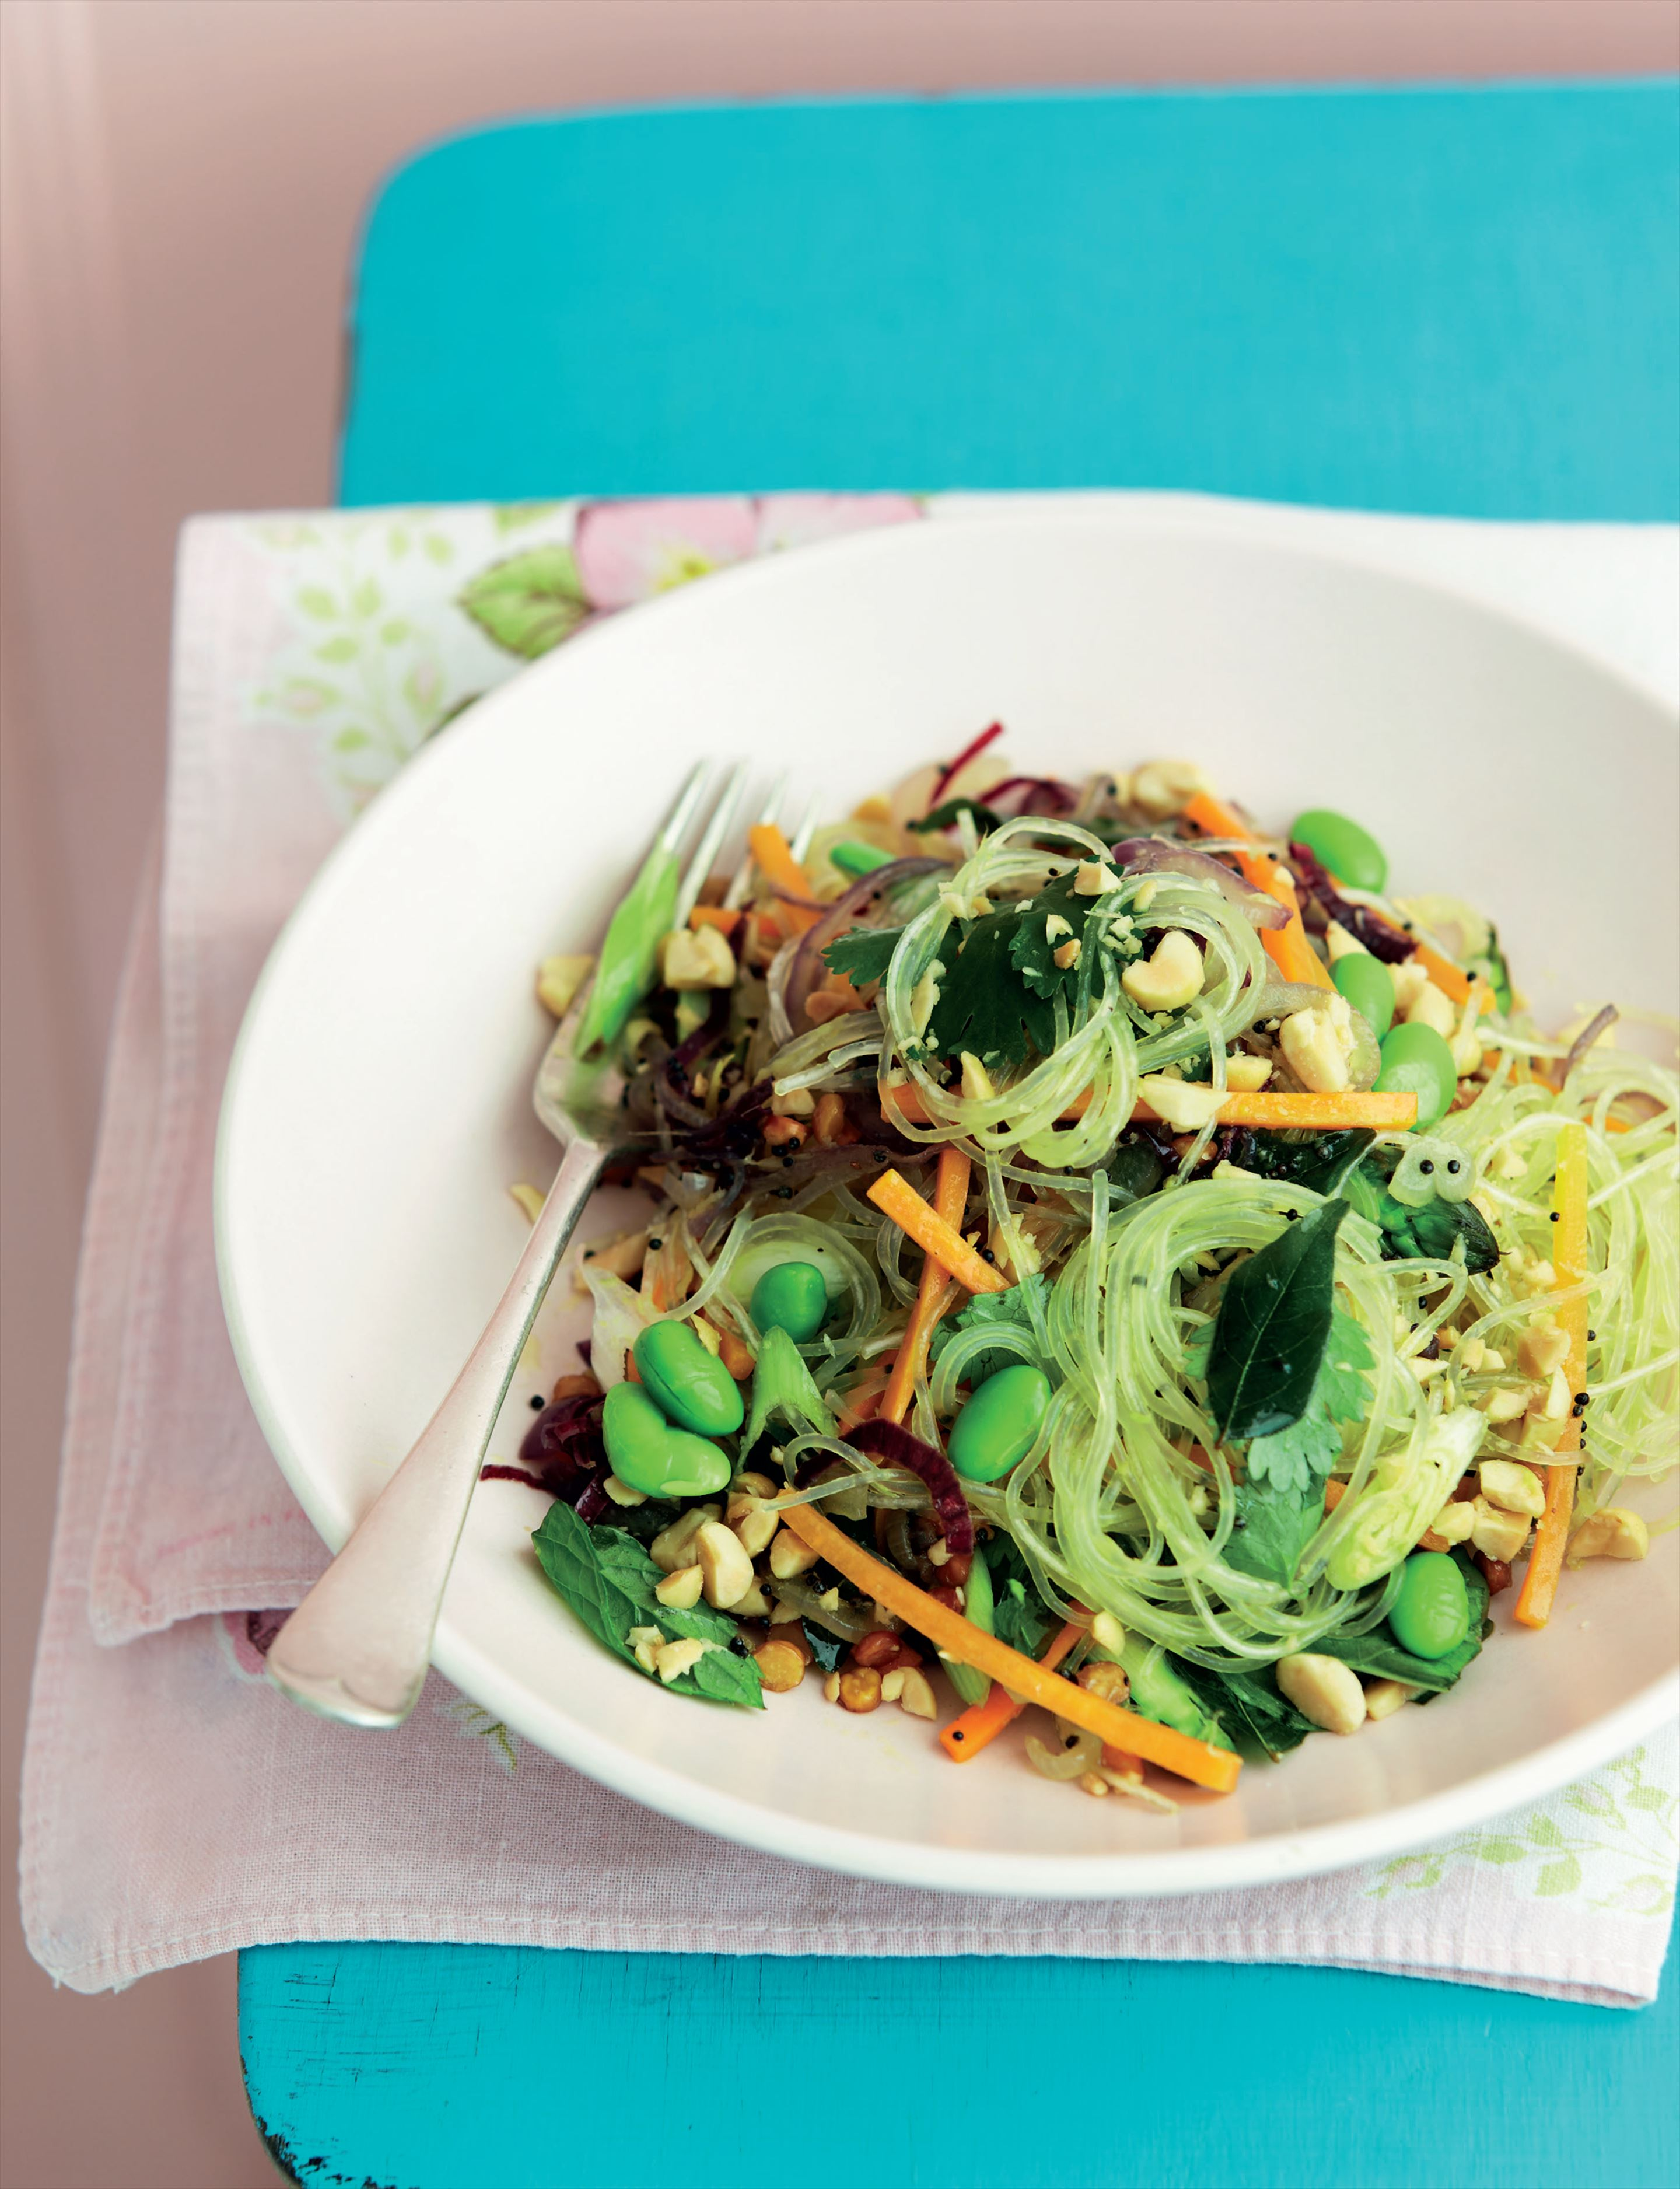 Indian stir-fried spring veg vermicelli with peanuts